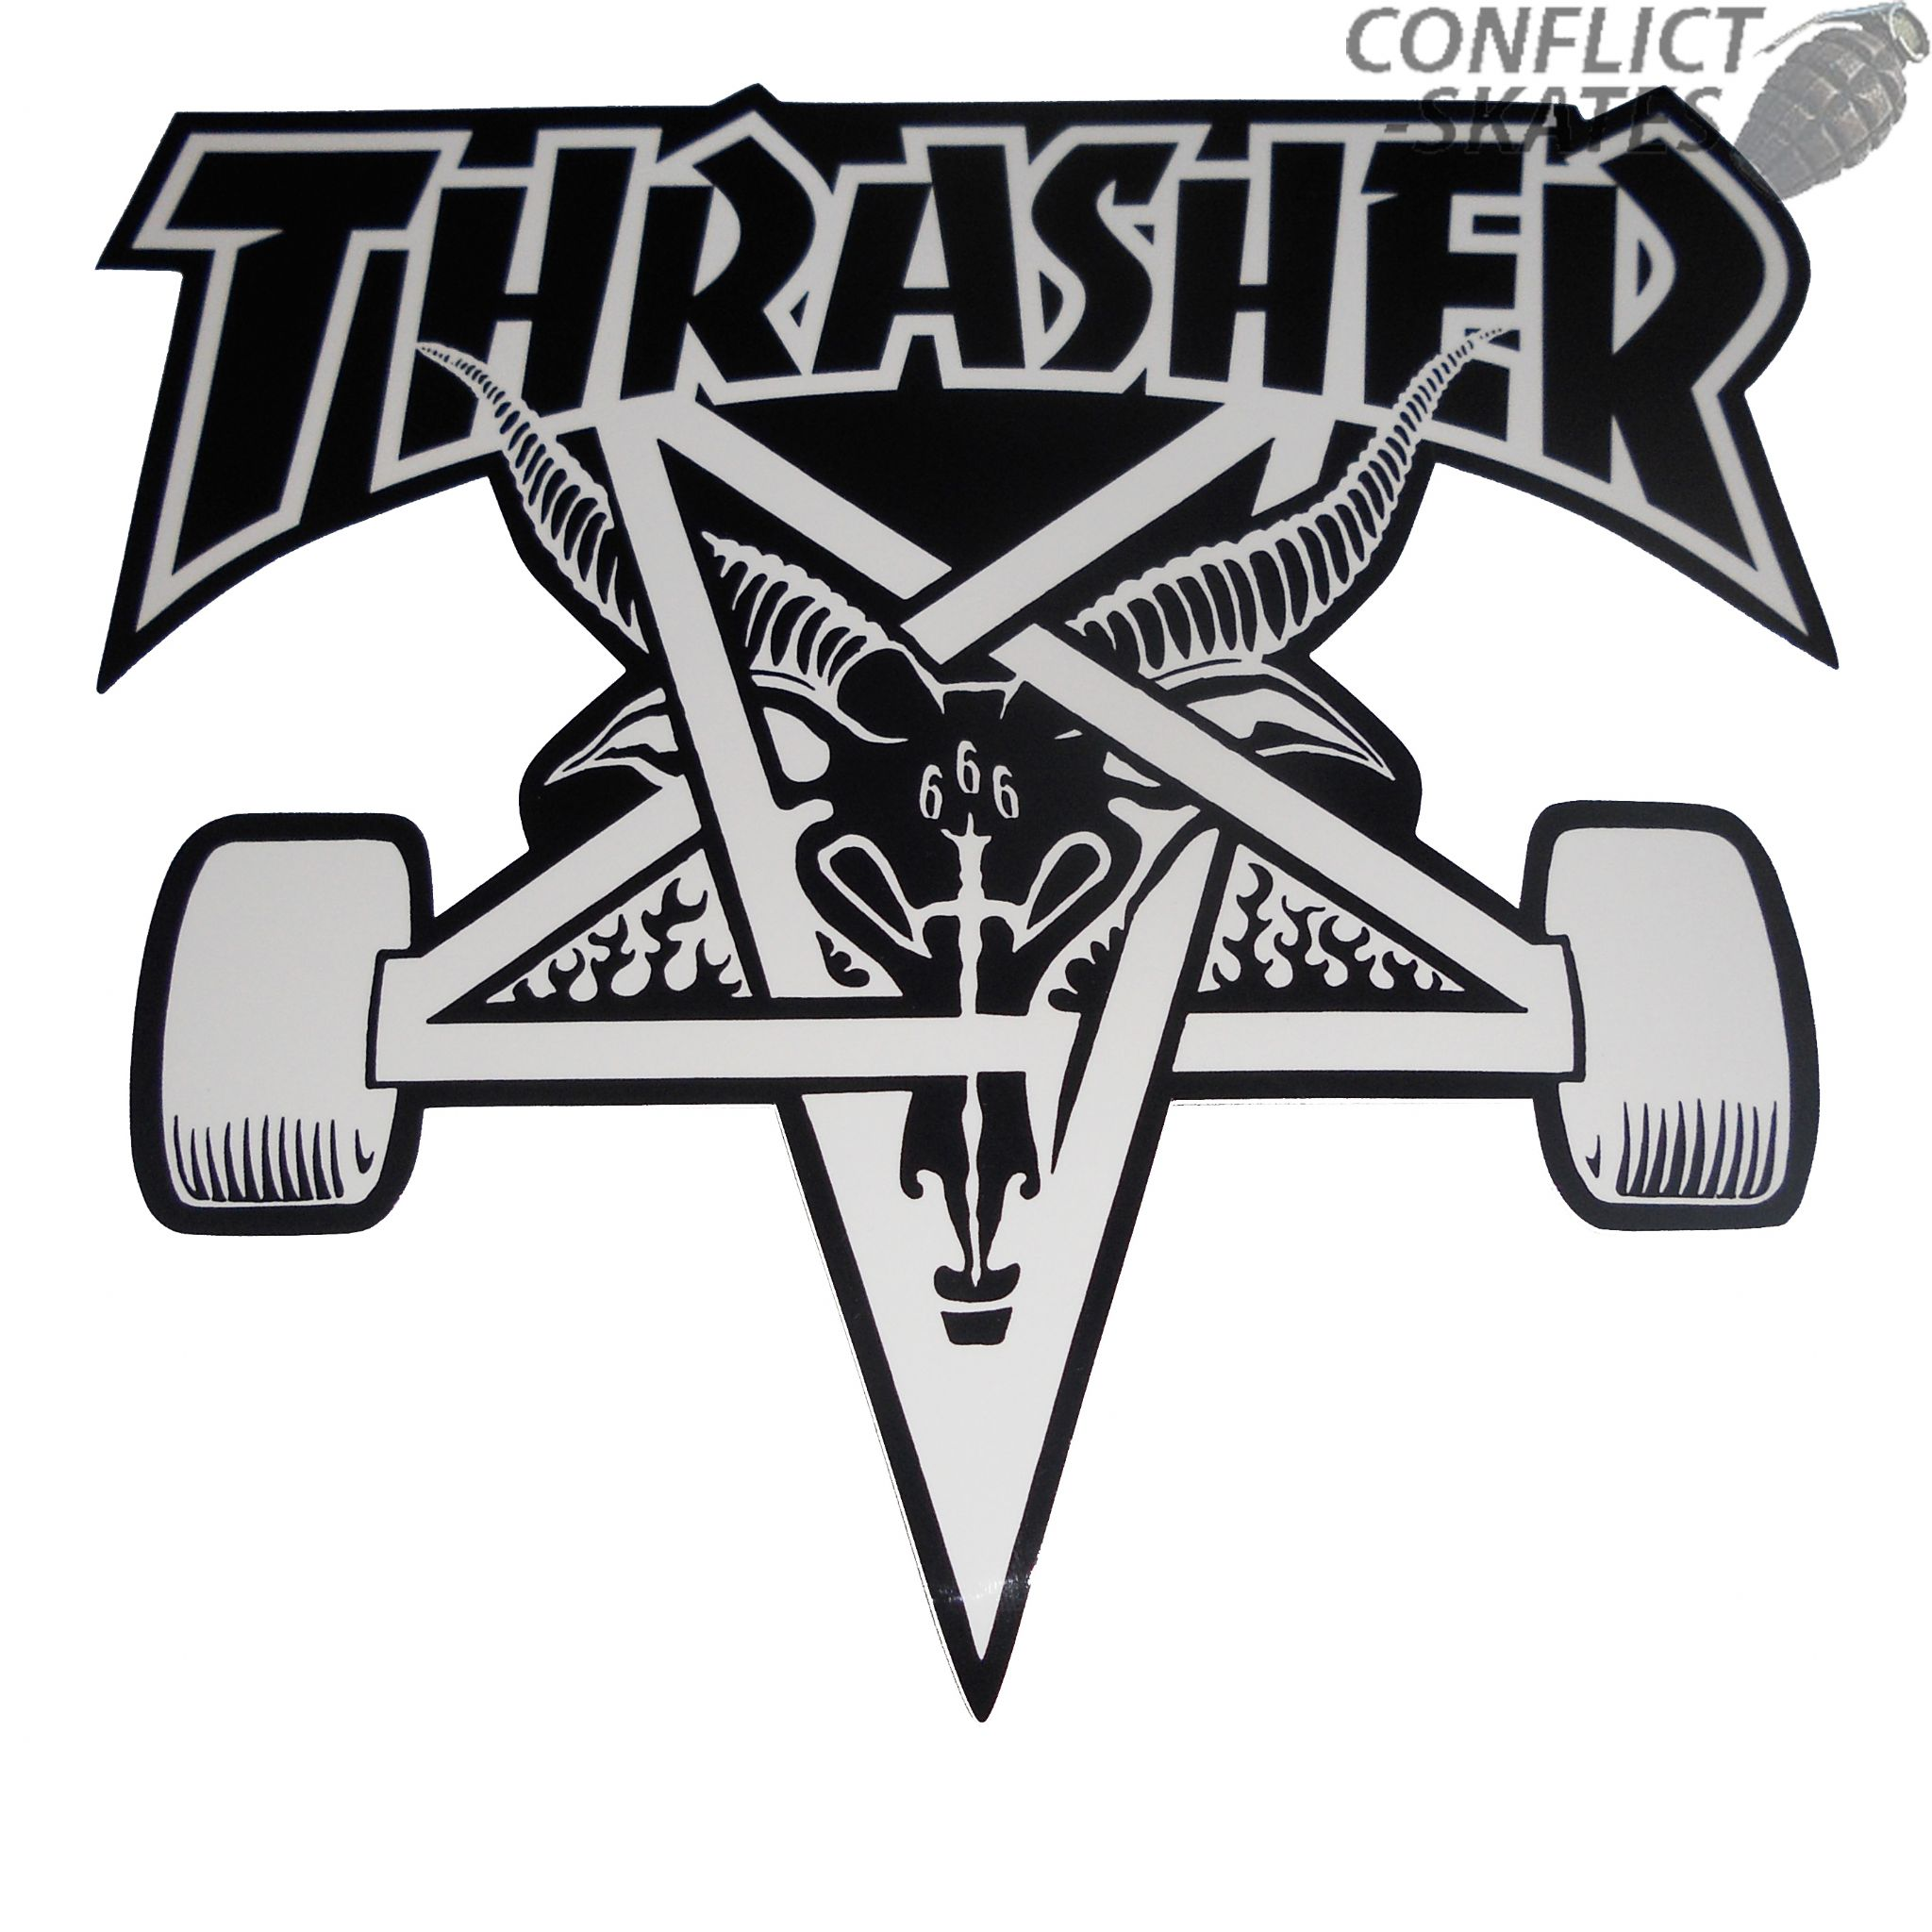 Thrasher Skate Goat Skateboard Sticker 10cm Medium White